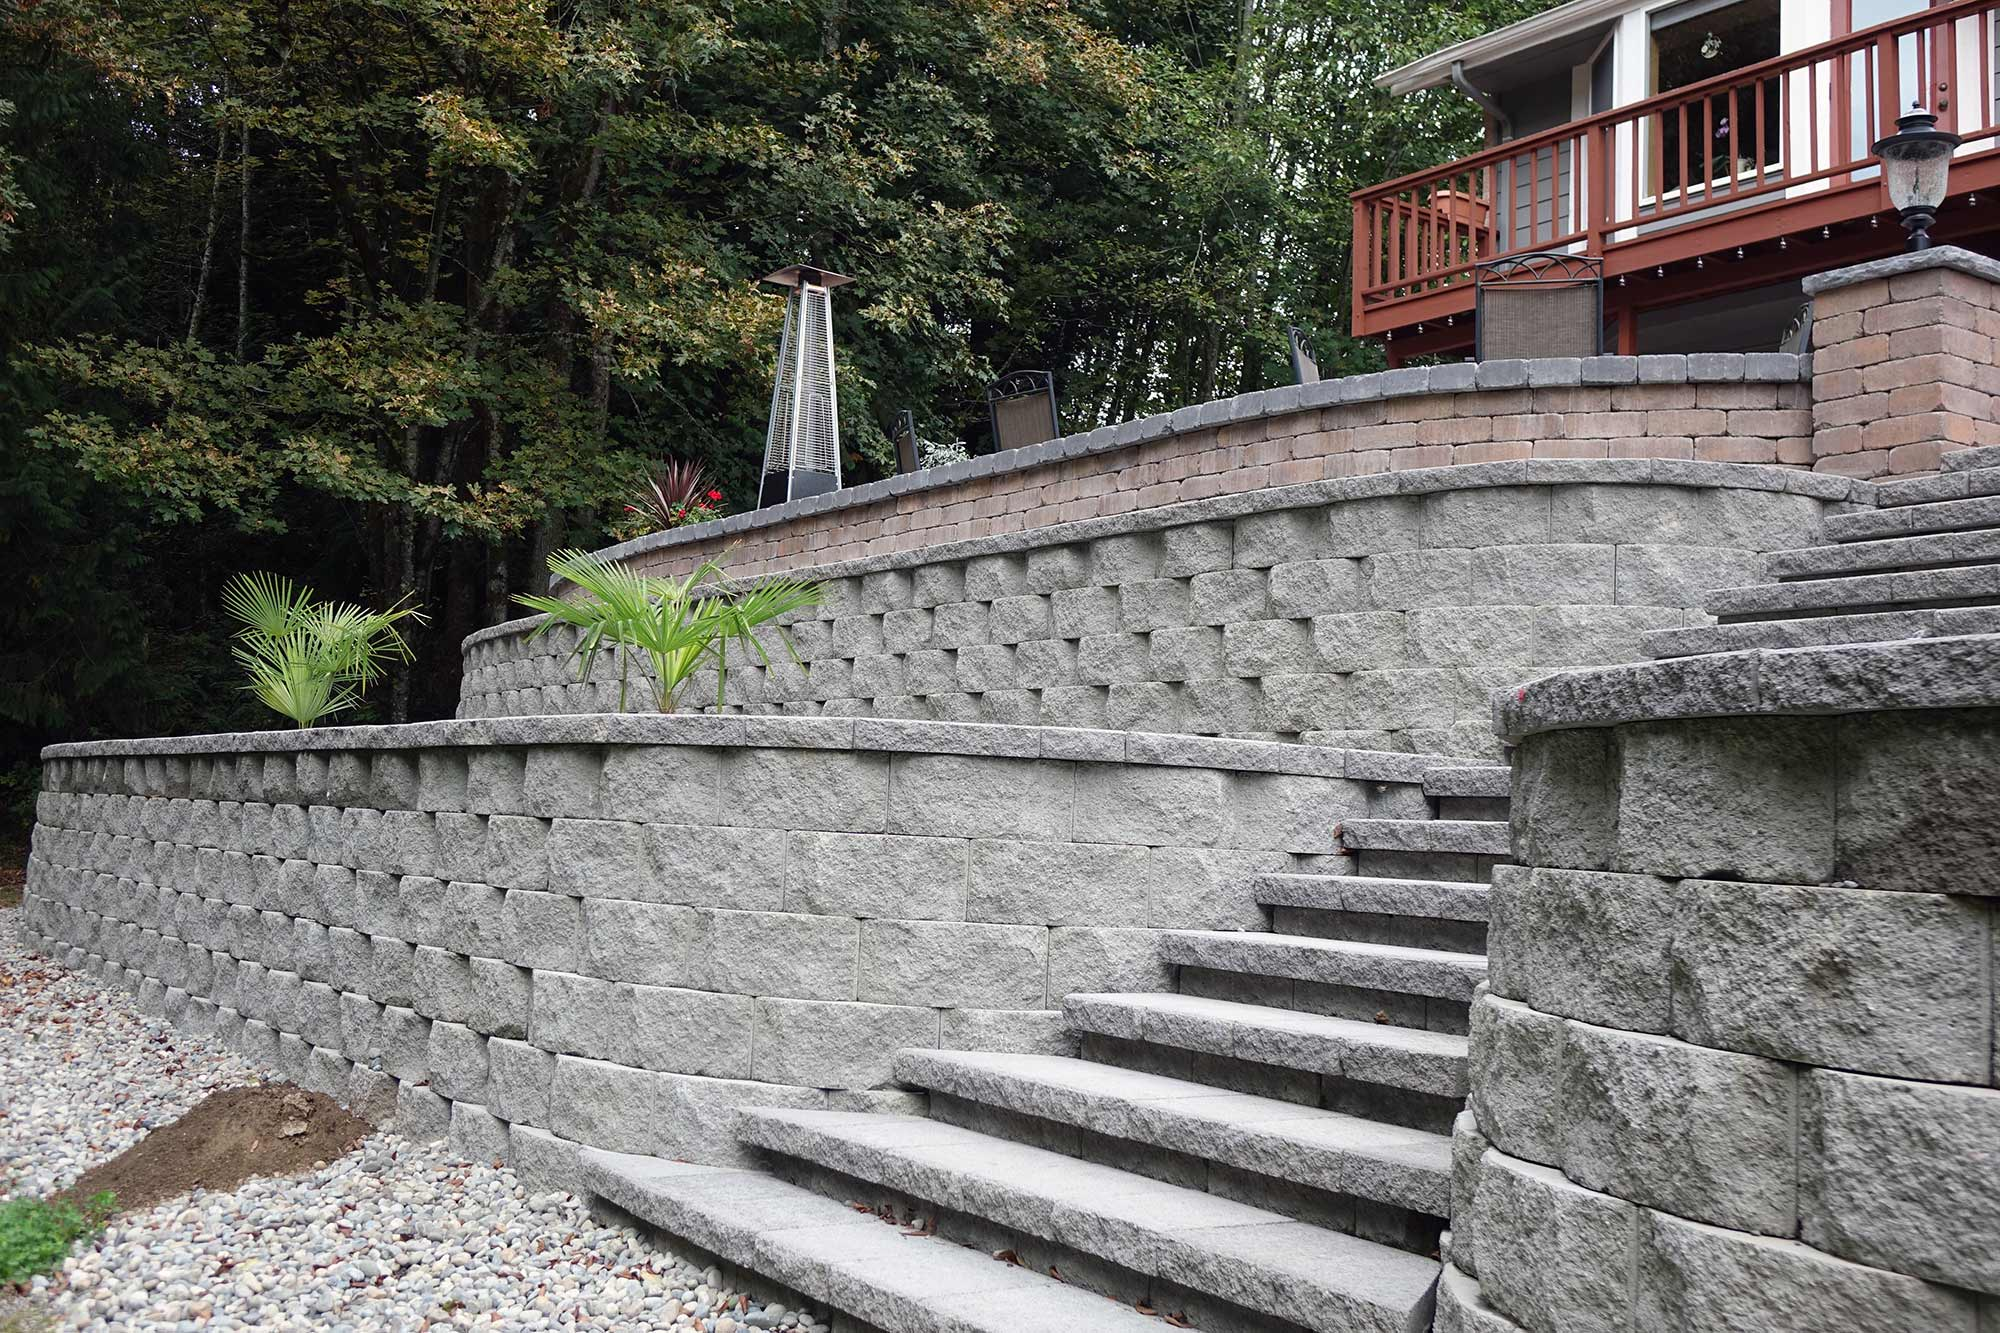 Three-tier retaining wall with staircase